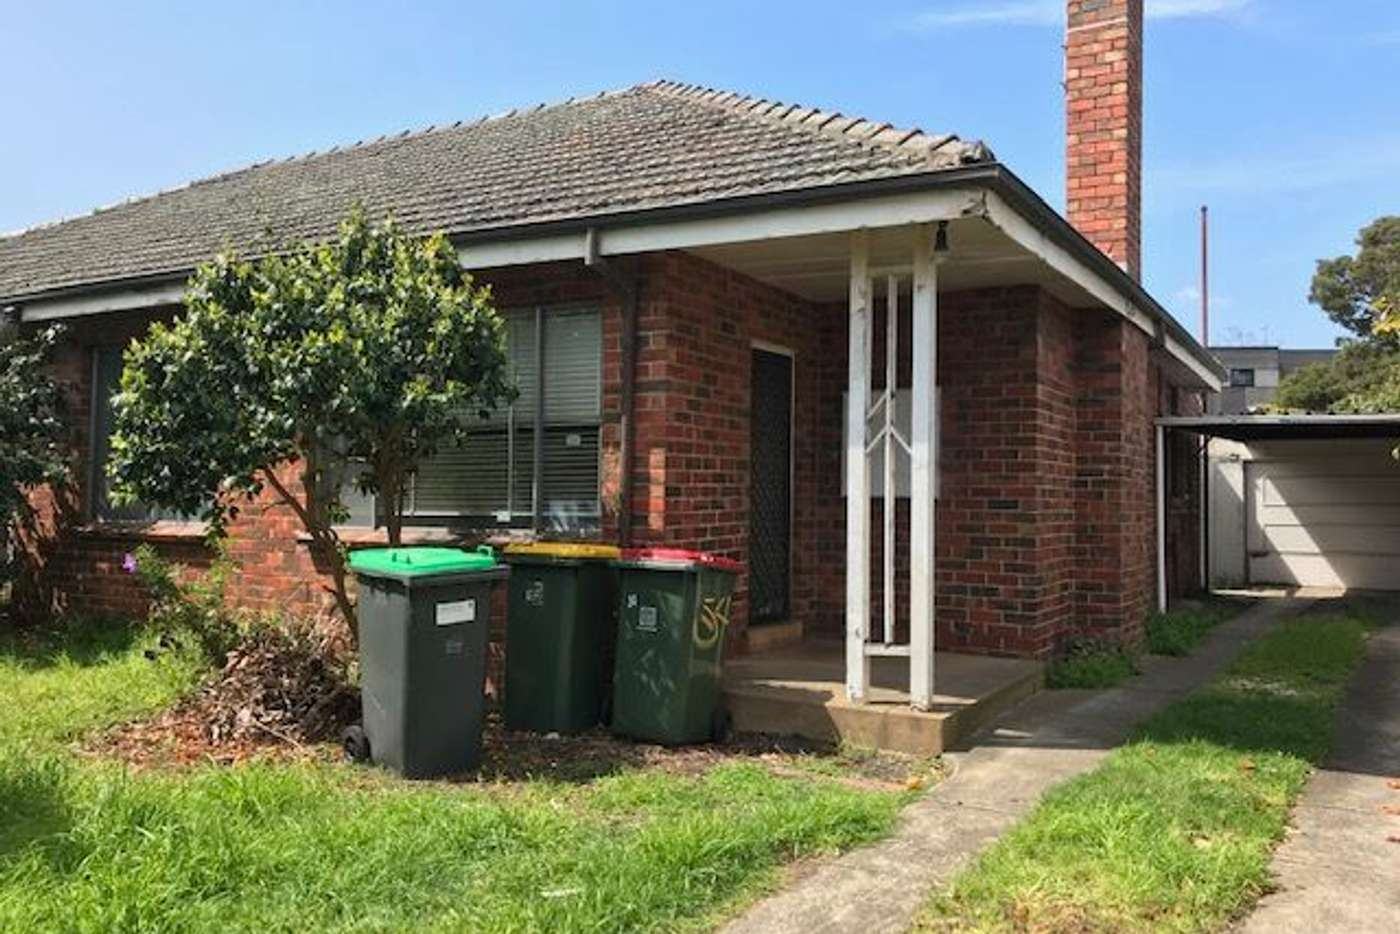 Main view of Homely unit listing, 34 Tucker Rd, Bentleigh VIC 3204